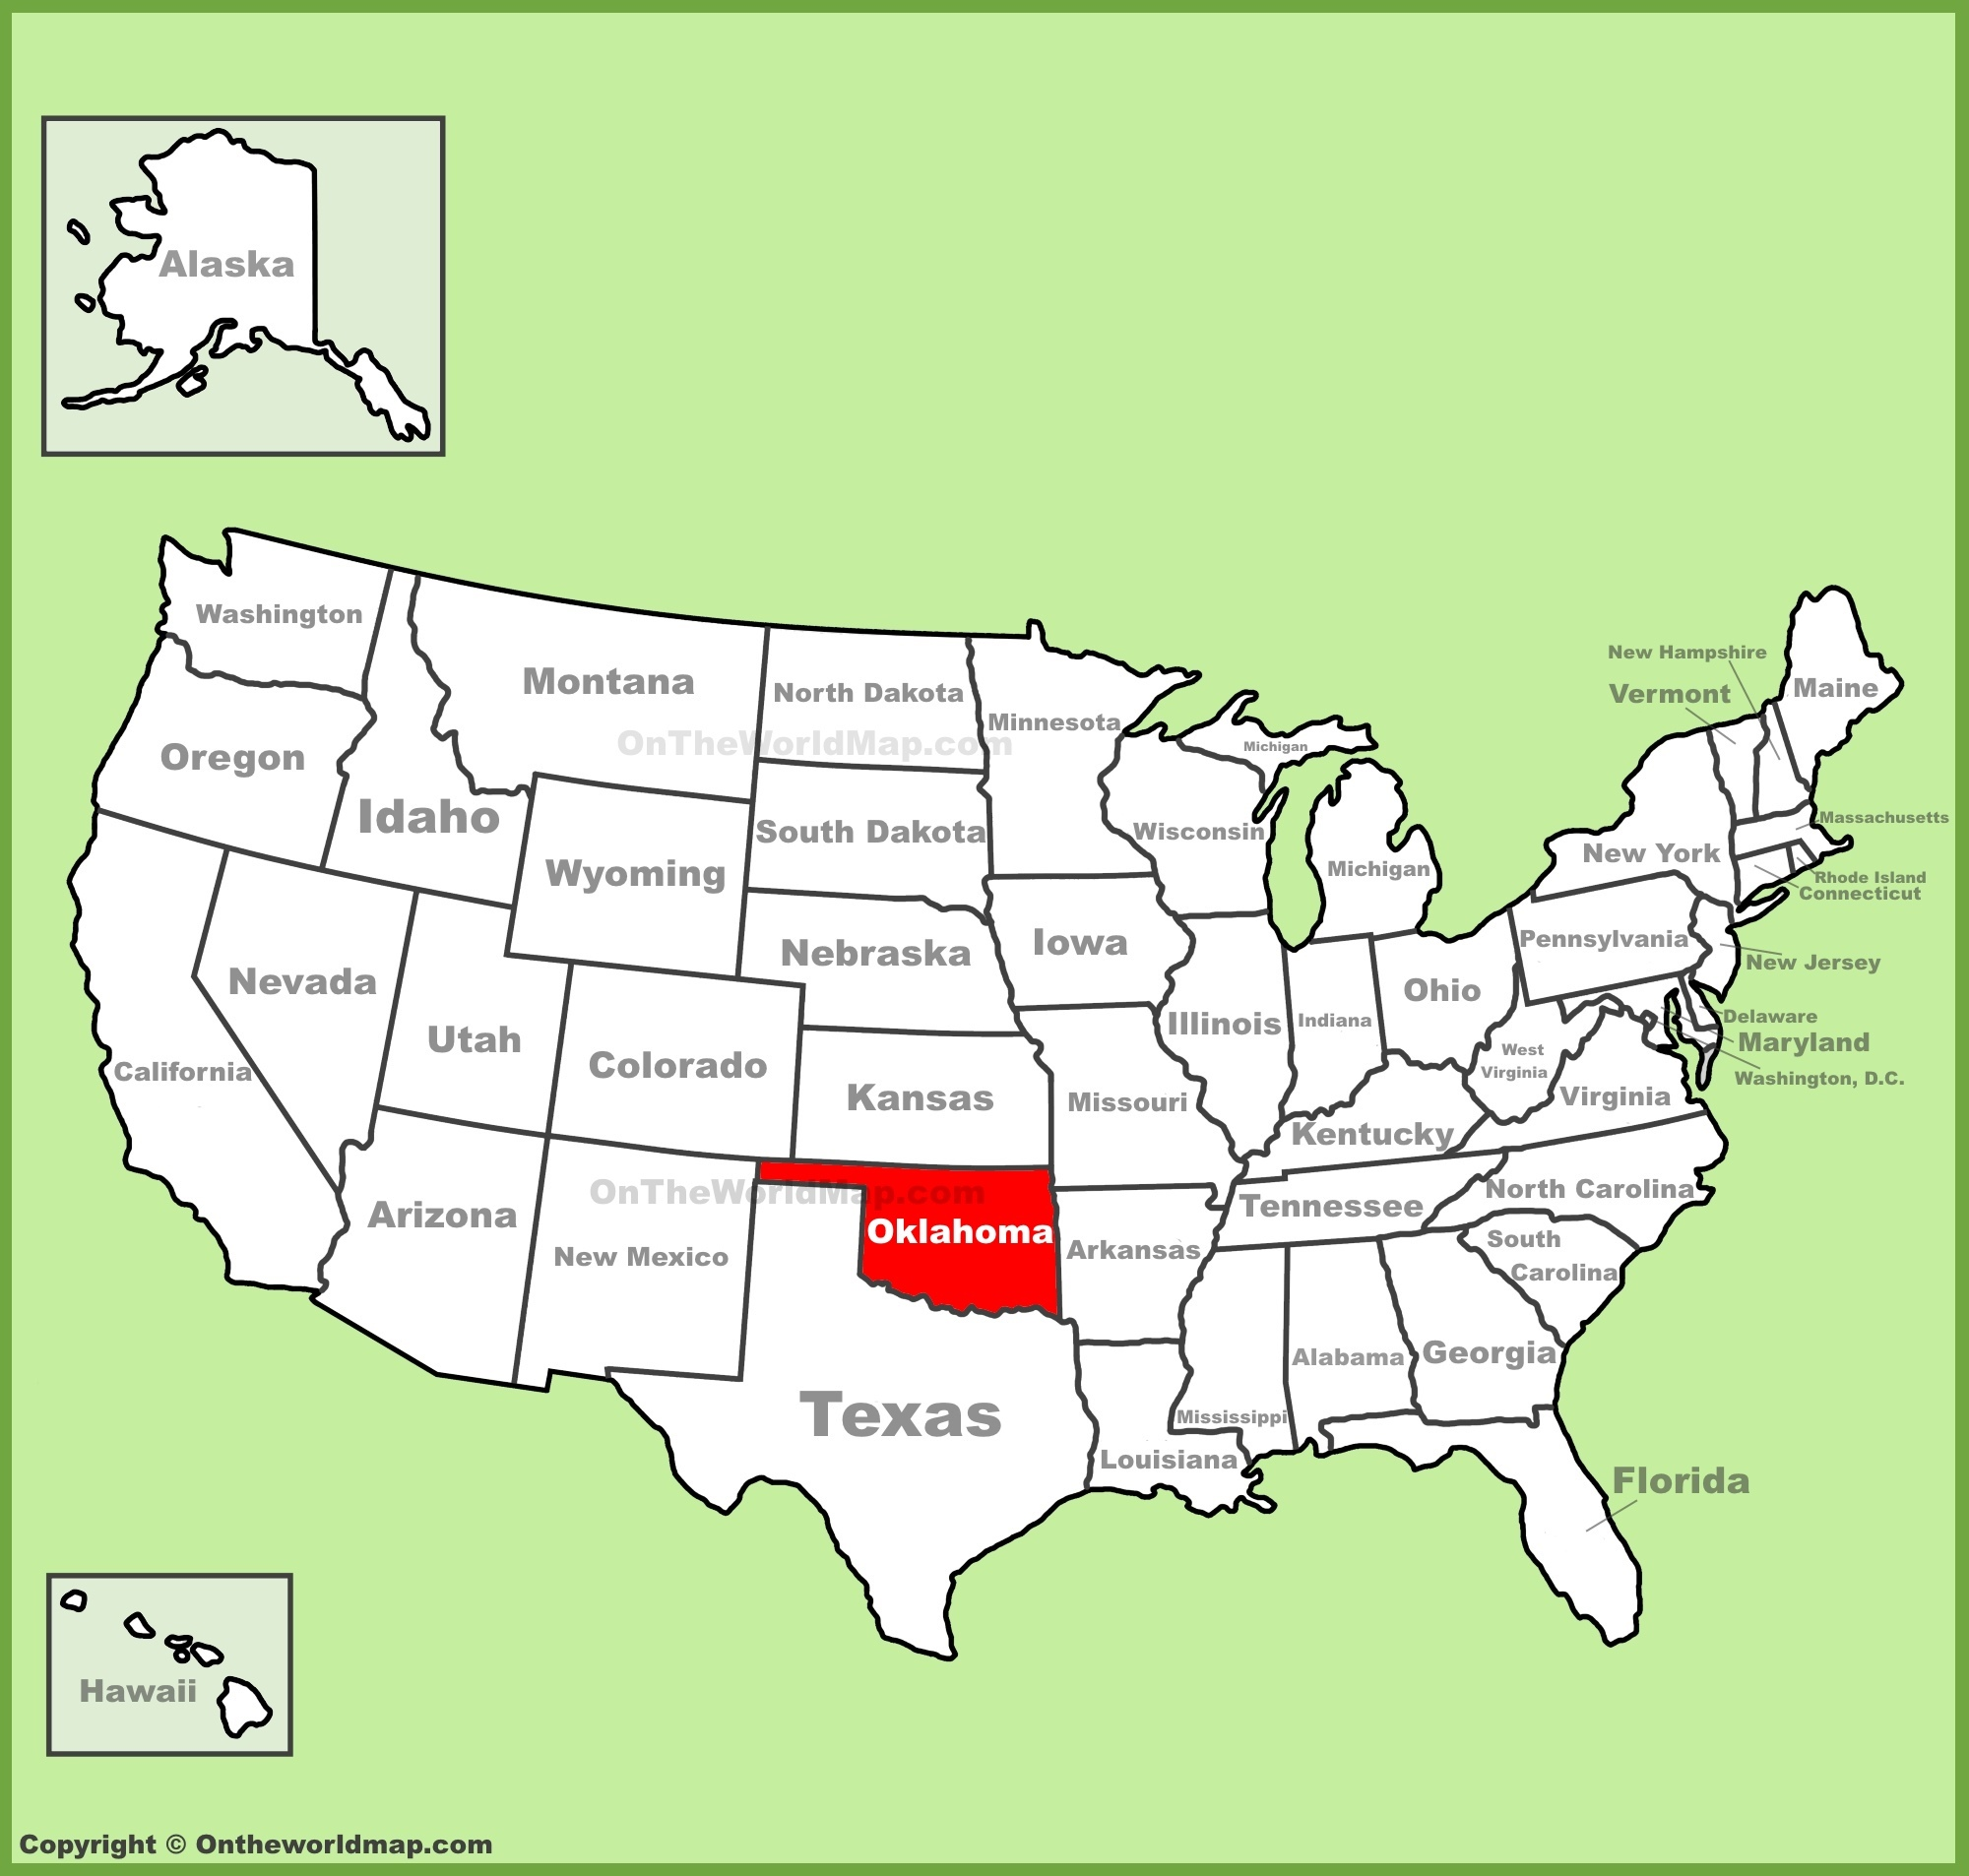 State Of Oklahoma Map Oklahoma location on the U.S. Map State Of Oklahoma Map